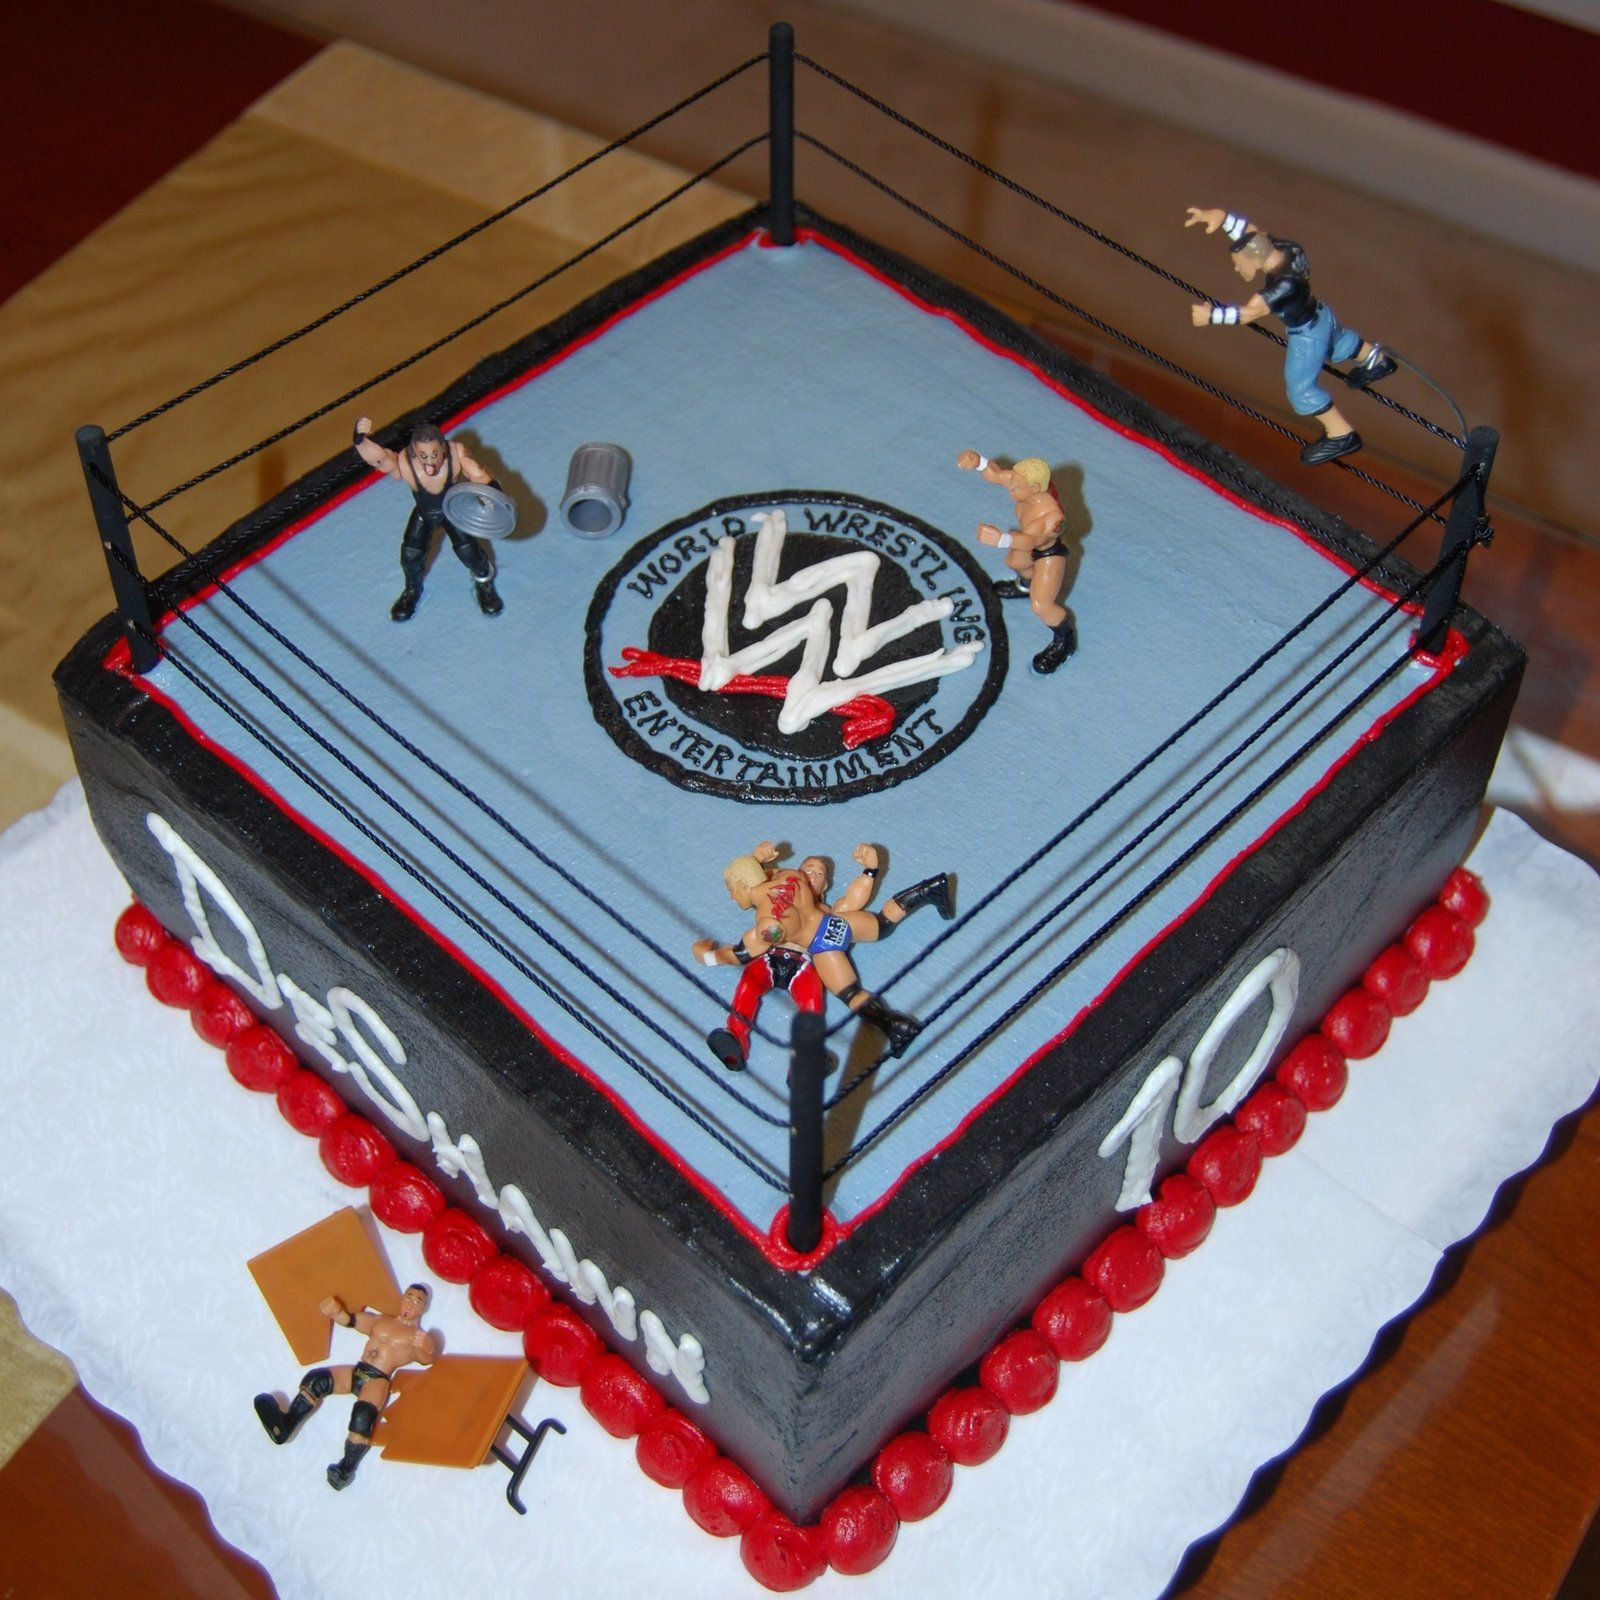 Incredible John Cena Cake Ideas Google Search Wwe Birthday Cakes Personalised Birthday Cards Beptaeletsinfo